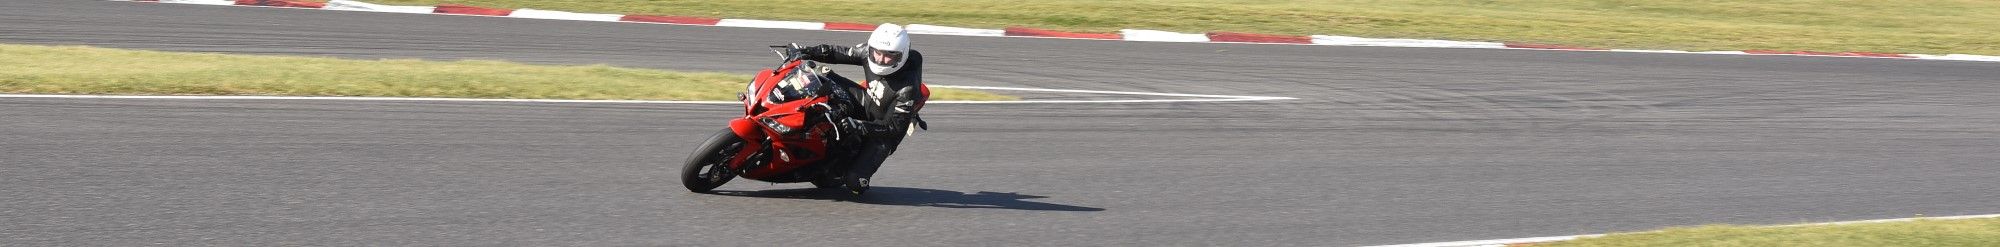 I Am New To Track Days